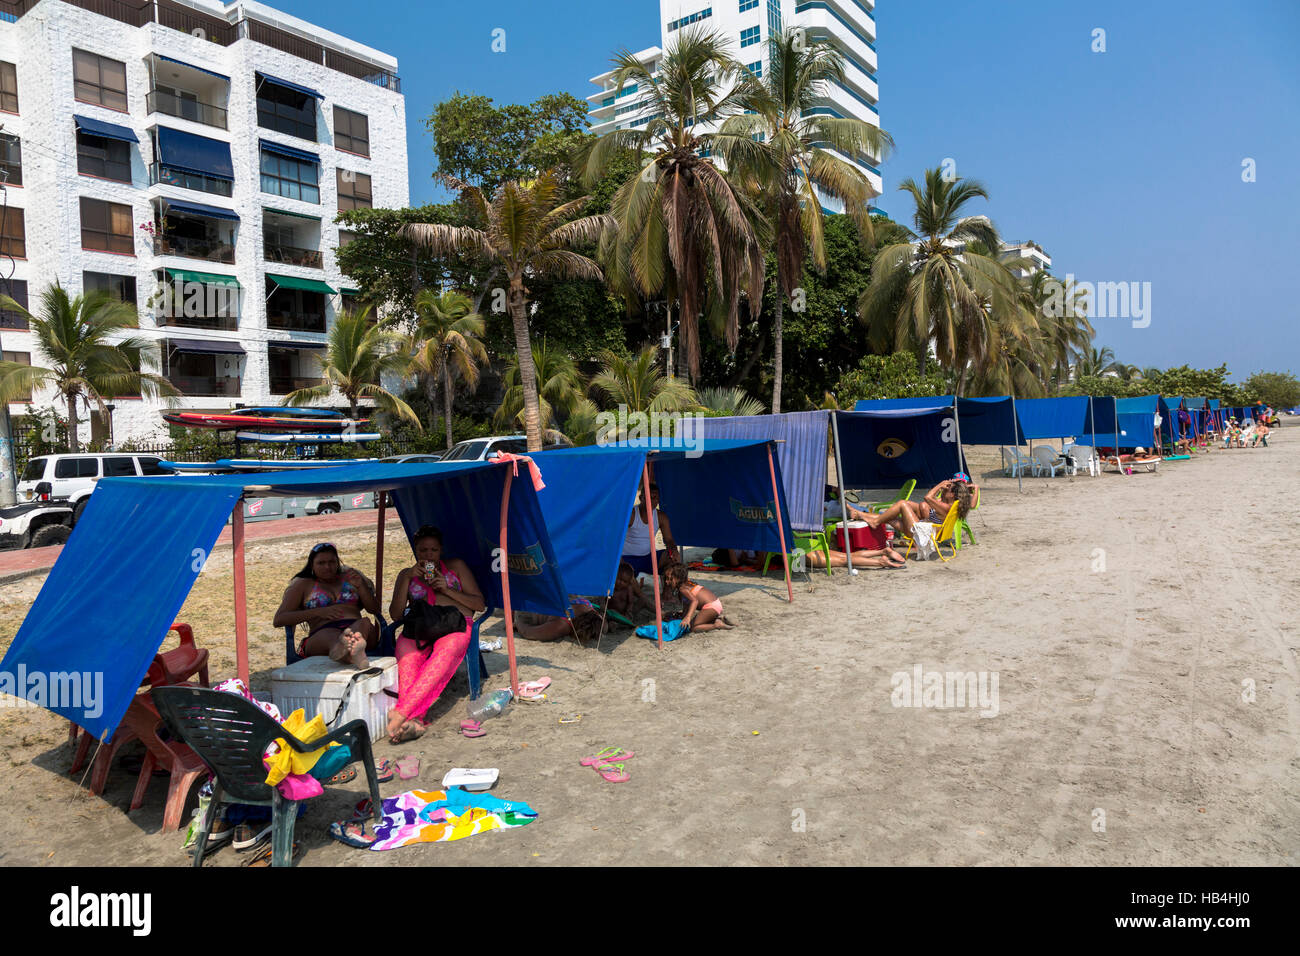 Families sitting in their beach tents on the Plaza Playa de Castillo Grande, Cartagena, Colombia - Stock Image